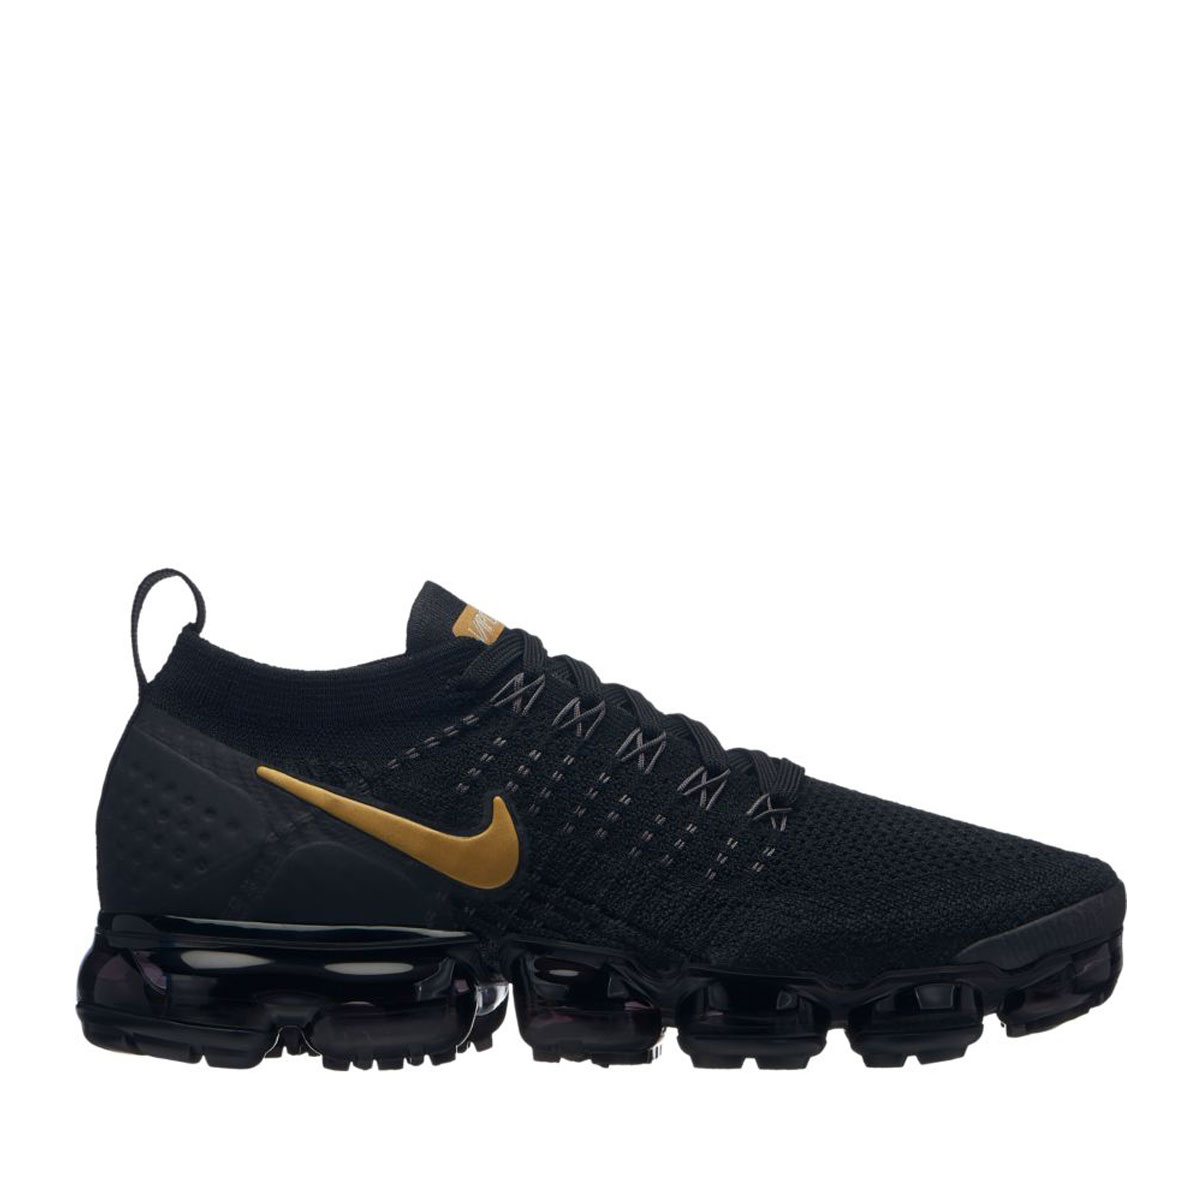 6a040eafb568 NIKE W AIR VAPORMAX FLYKNIT 2 (BLACK METALLIC GOLD-MTLC PLATINUM) (Nike  women air vapor max fried food knit 2)